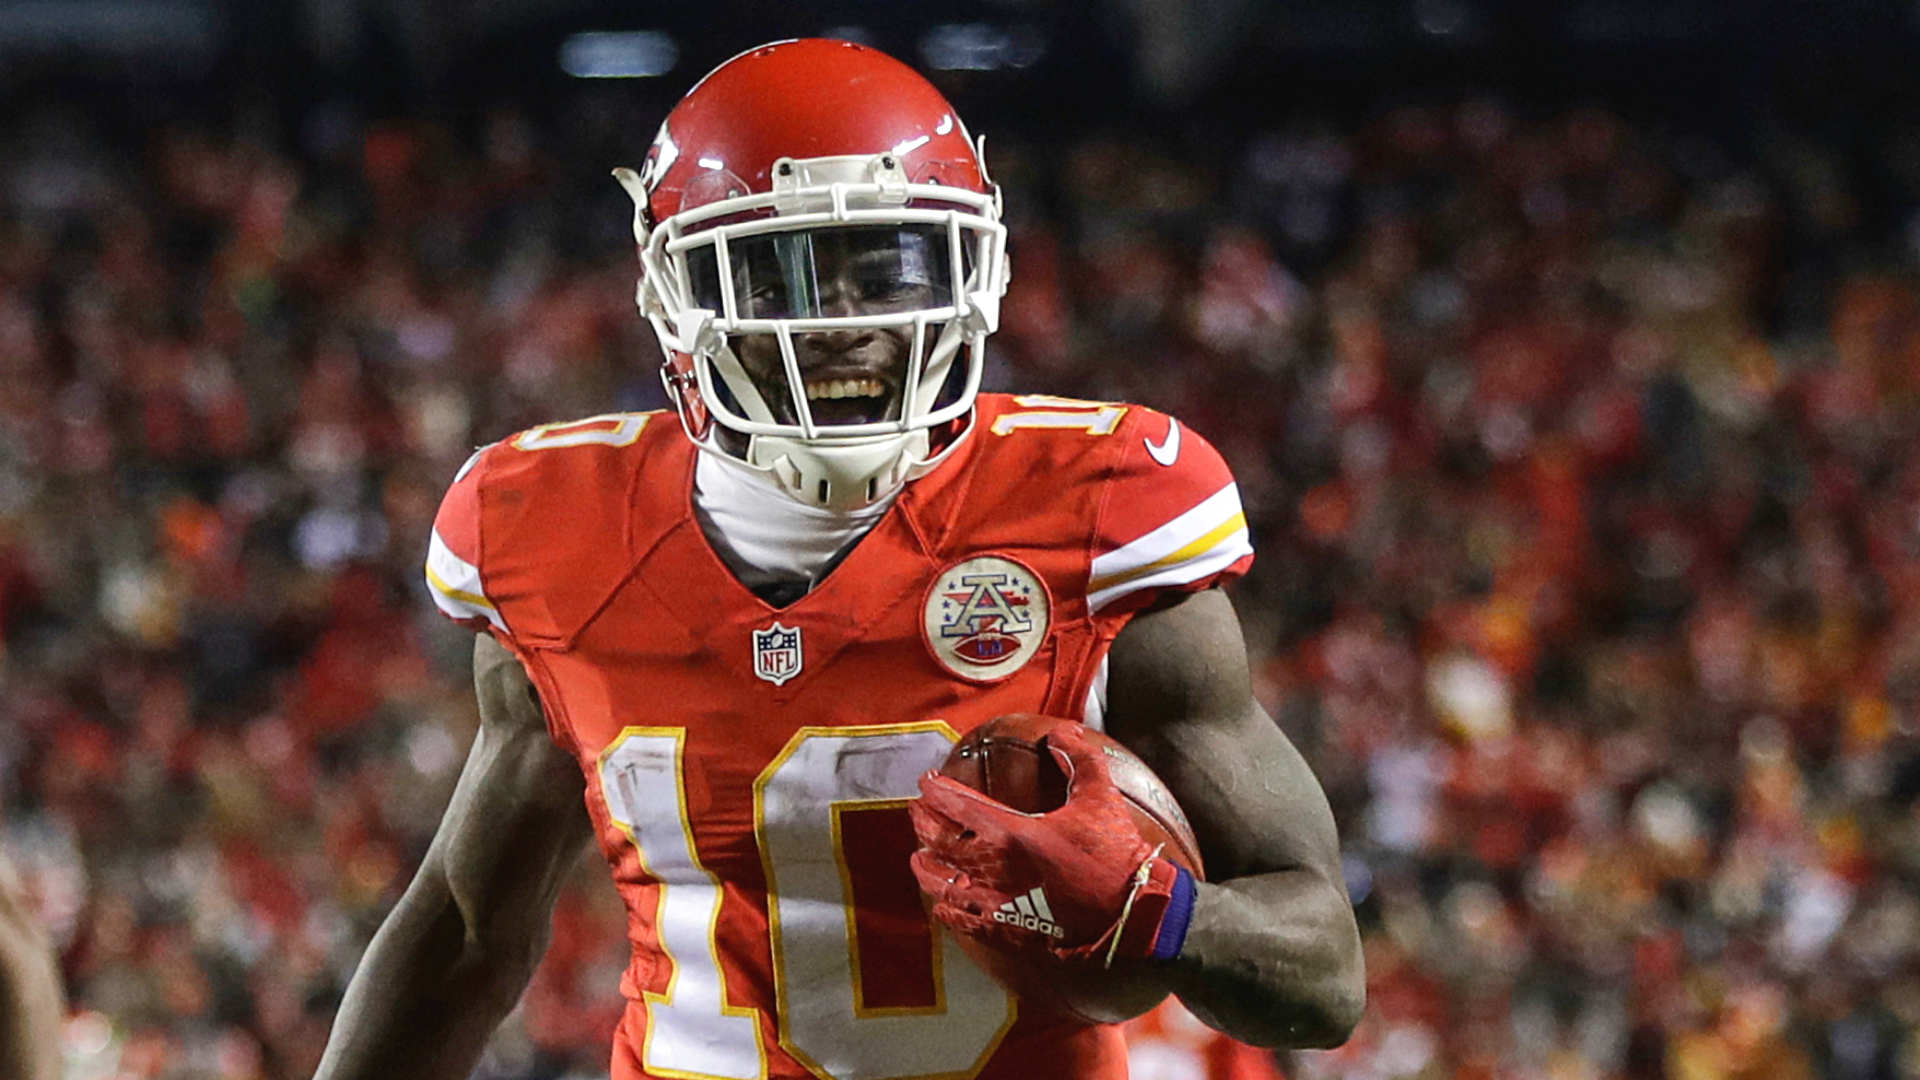 Chiefs WR Tyreek Hill scores on Hail Mary dump off to end first